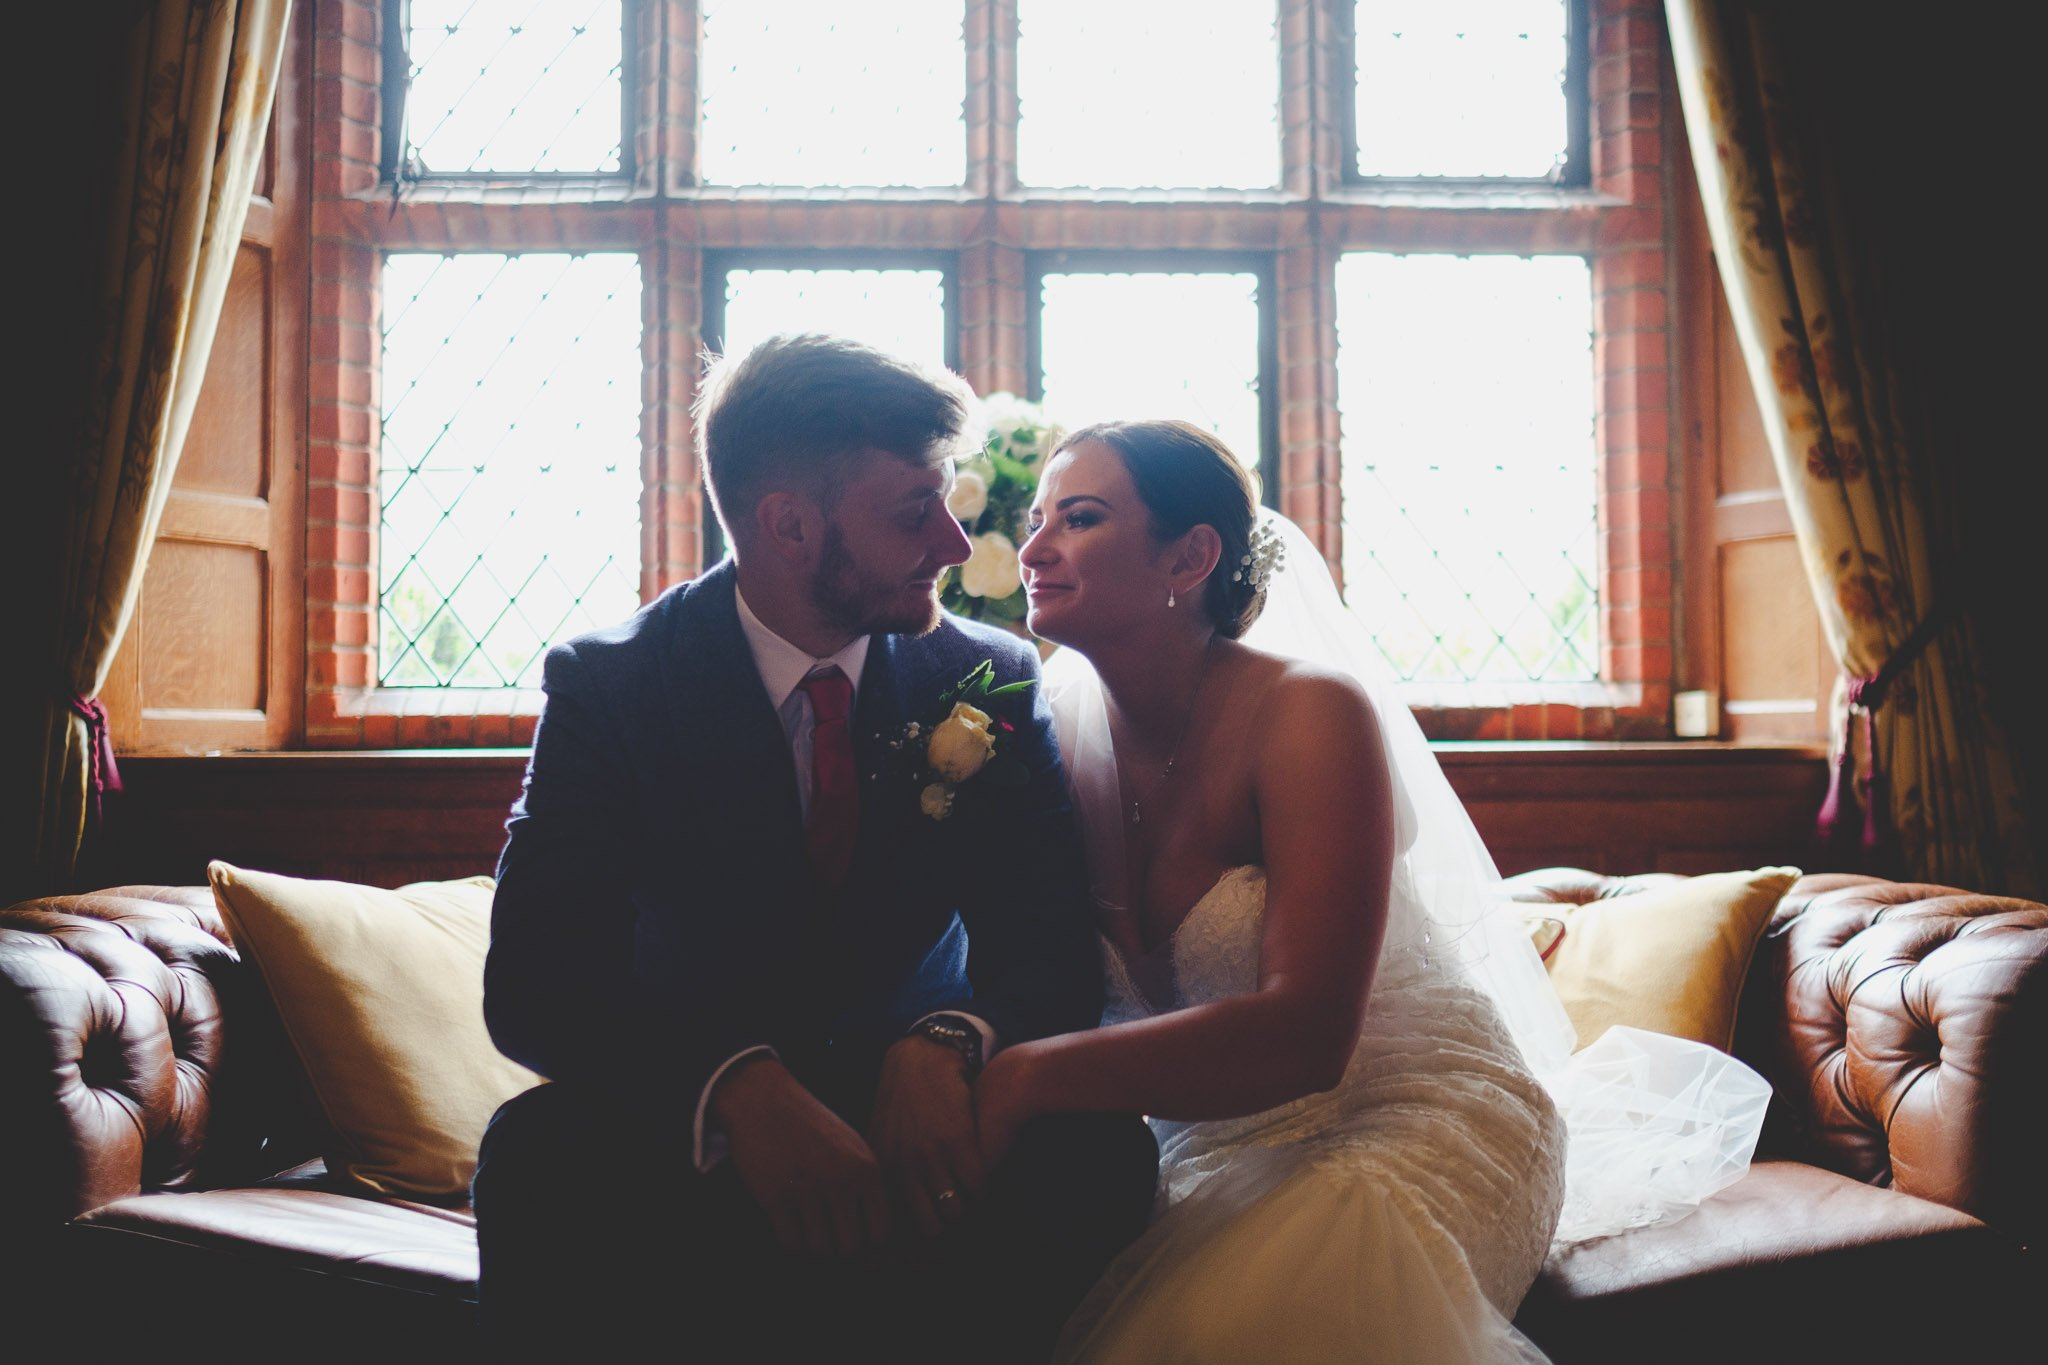 Just married bride & groom cuddle on a Chesterfield sofa in front of a window at Leez Priory Chelmsford. Photography by thatthingyoupluck